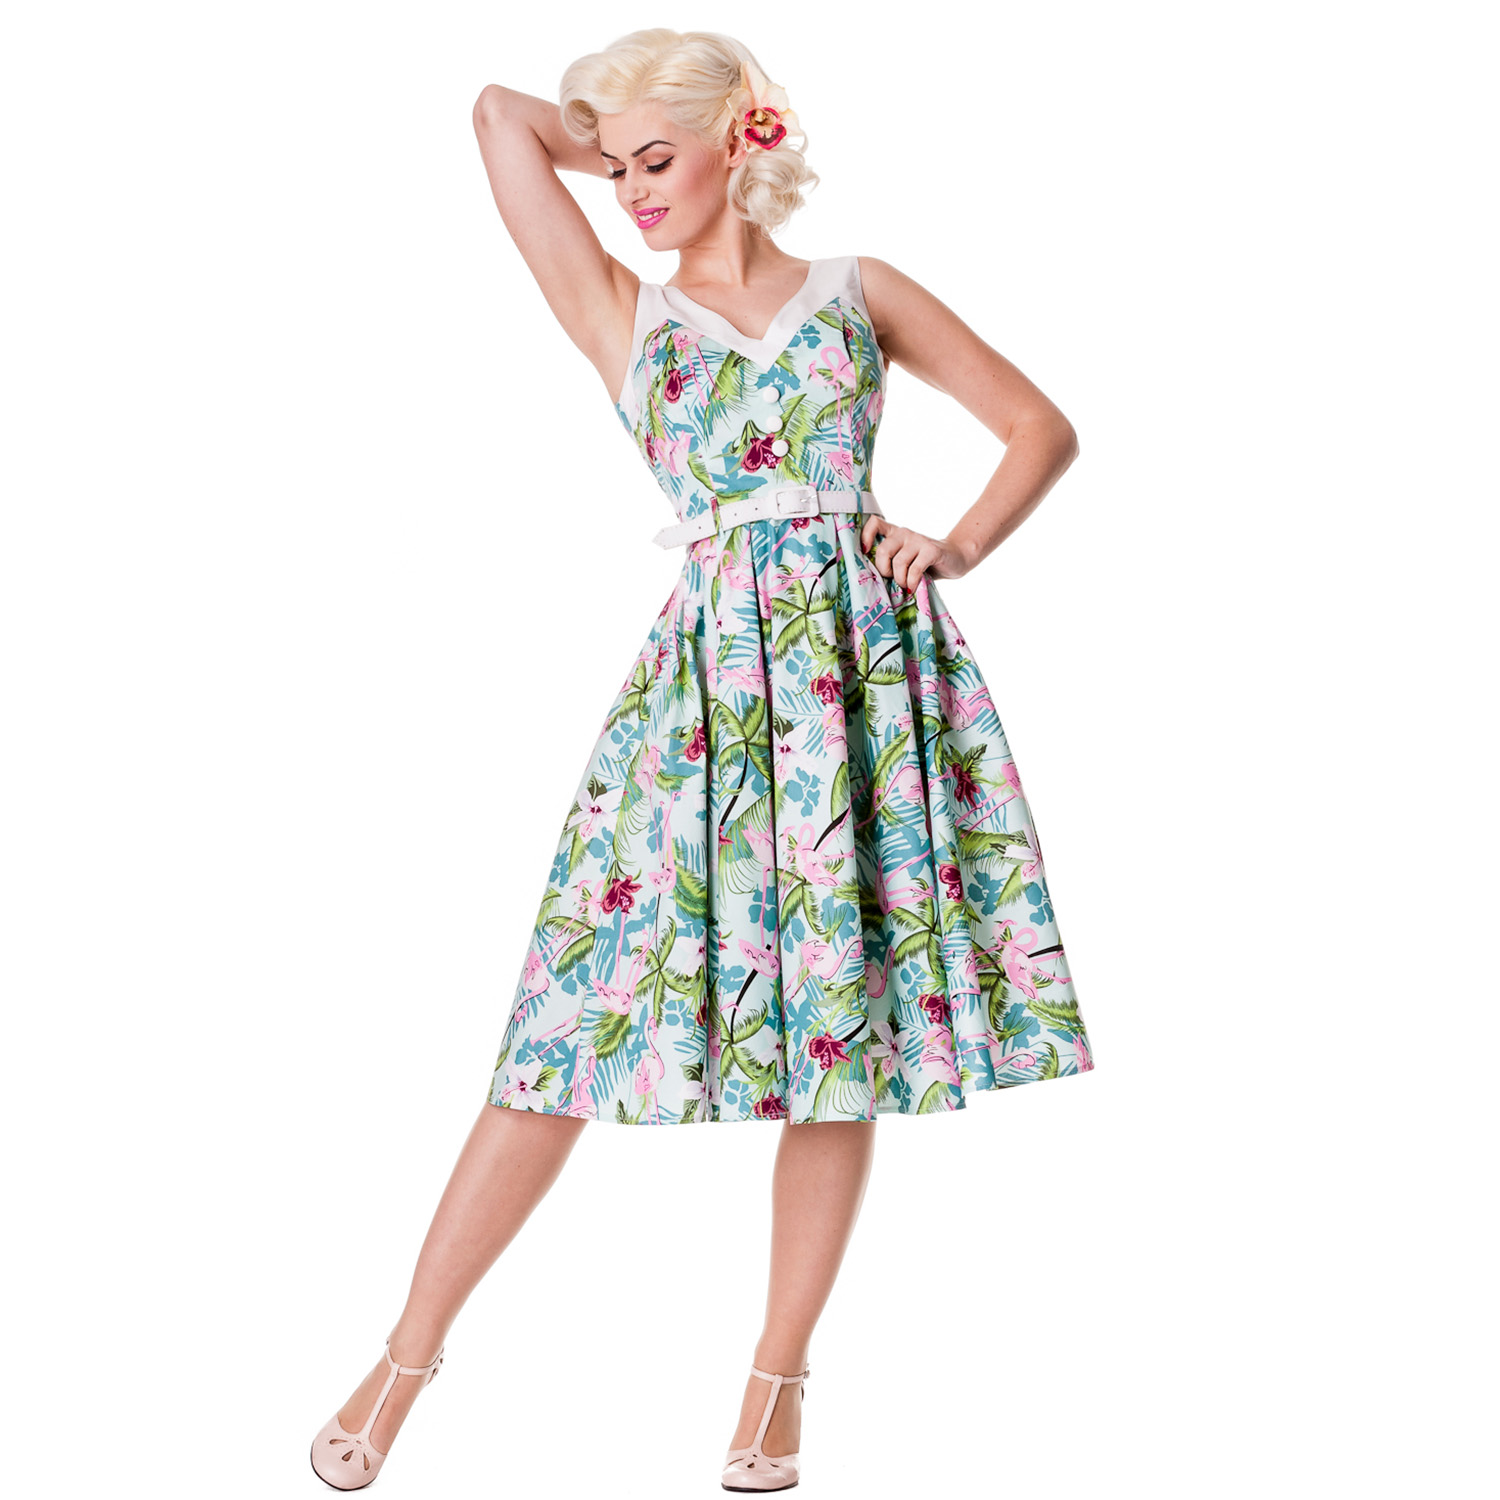 vintage style dresses image is loading hell-bunny-larissa-floral-flamingo-rockabilly-vintage-style - LTTUTJS